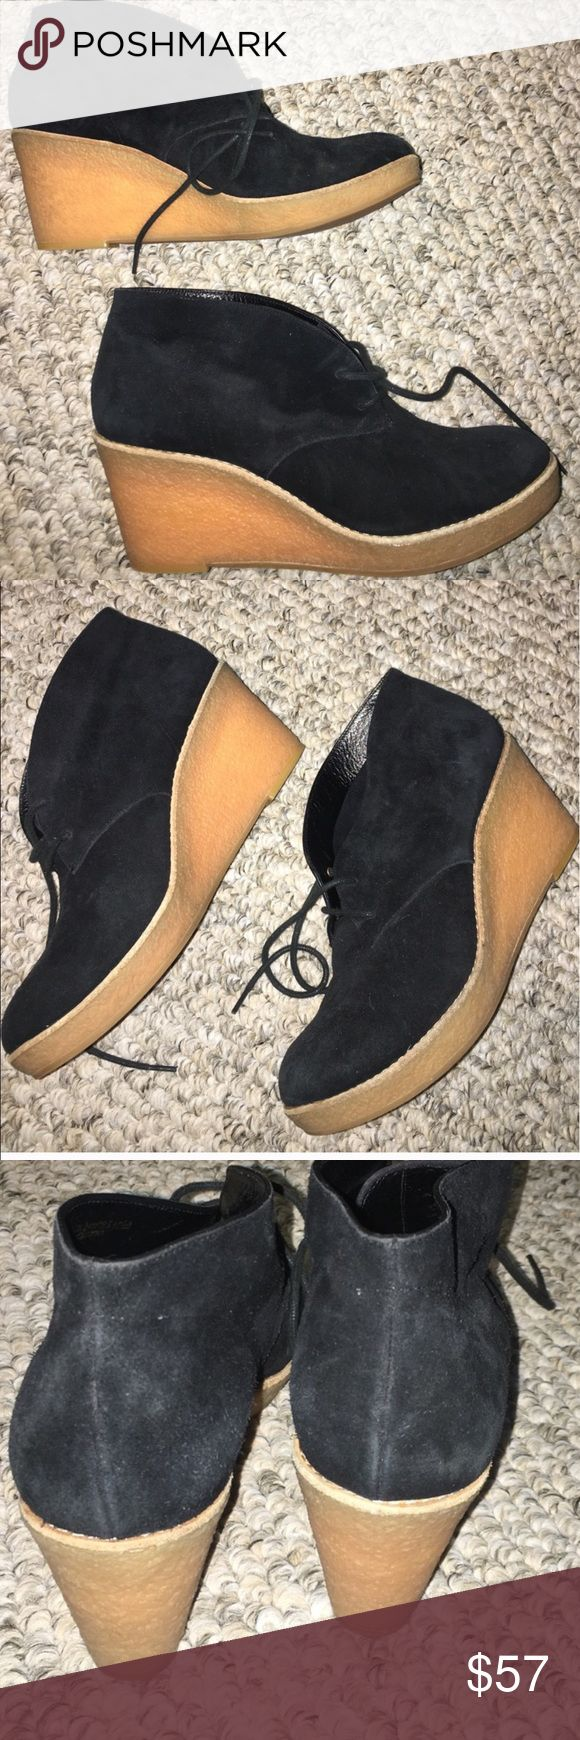 Cole Haan wedge Suede with gum rubber wedge tie ups fun casual 2 wears euc like new Cole Haan Shoes Wedges